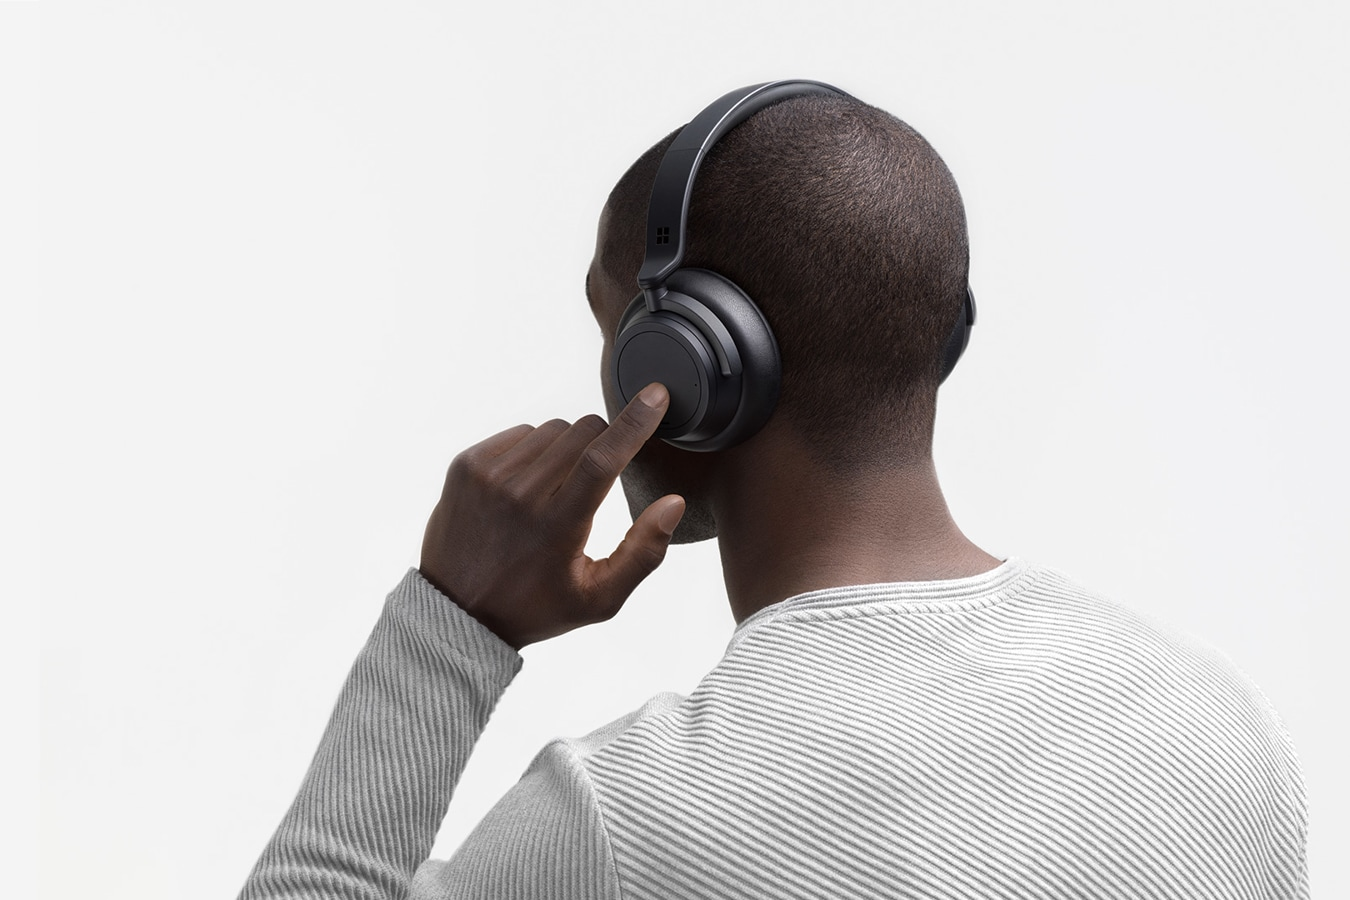 A person wears Surface Headphones 2+ and is shown using touch controls